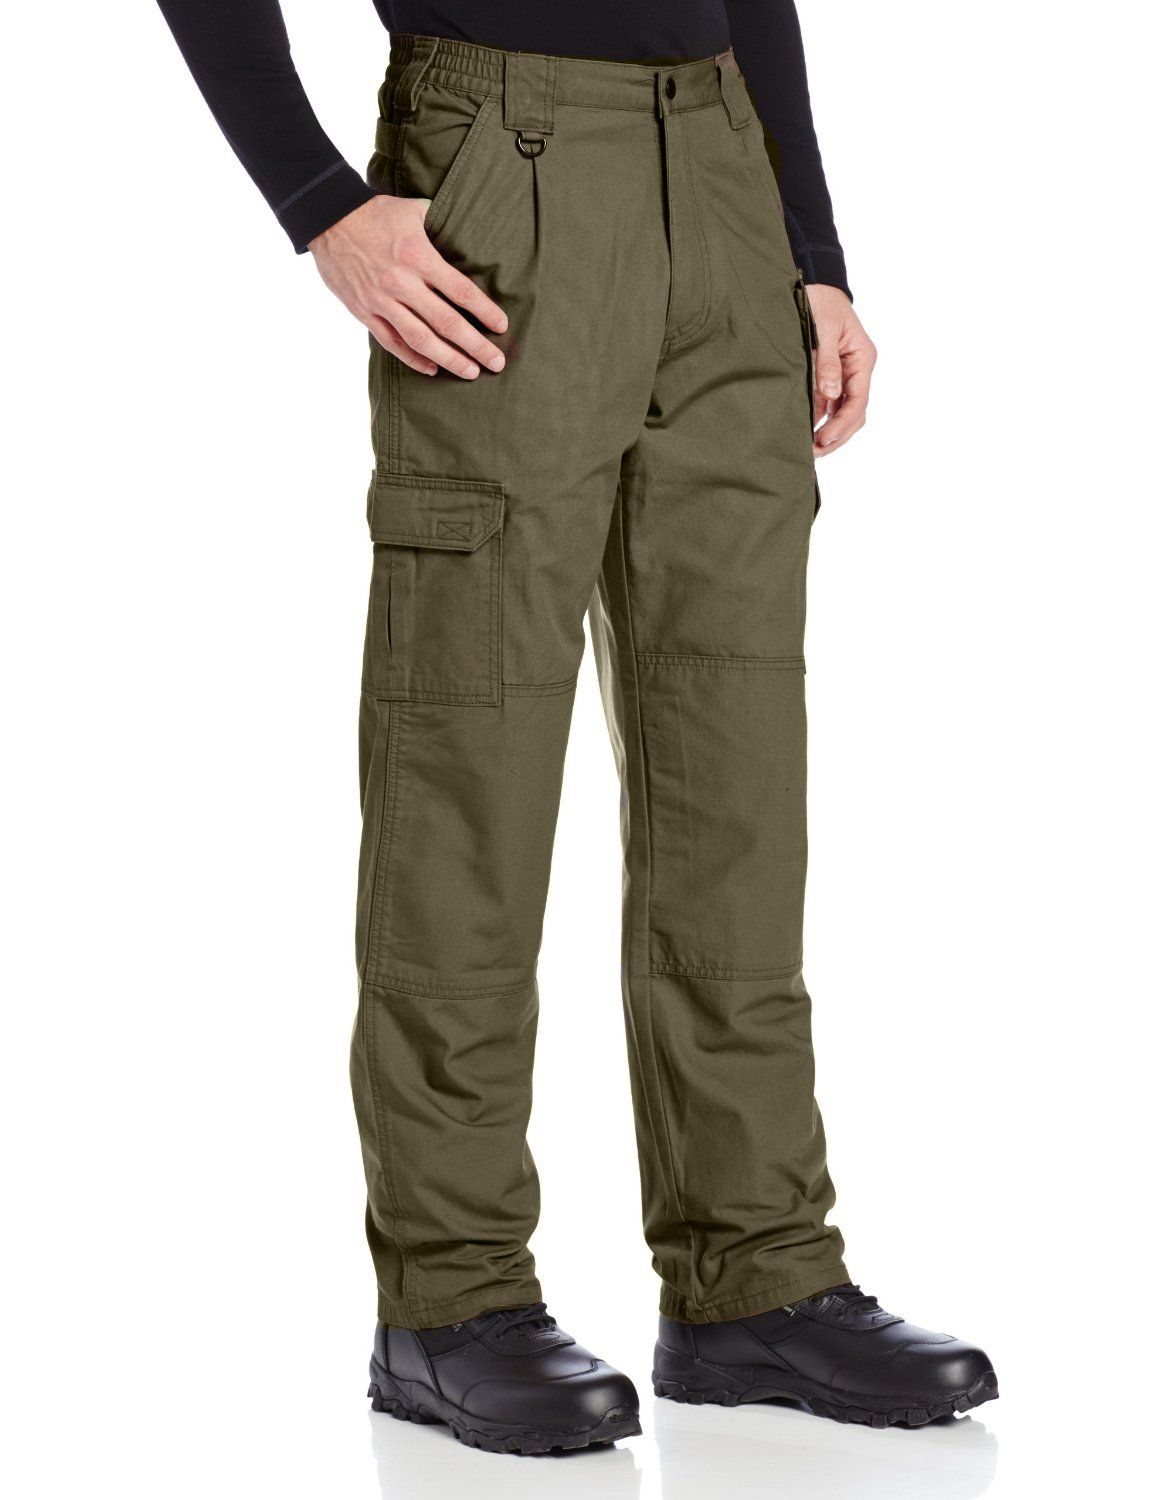 5.11 Tactical Pants,Tundra,40Wx32L by 5.11